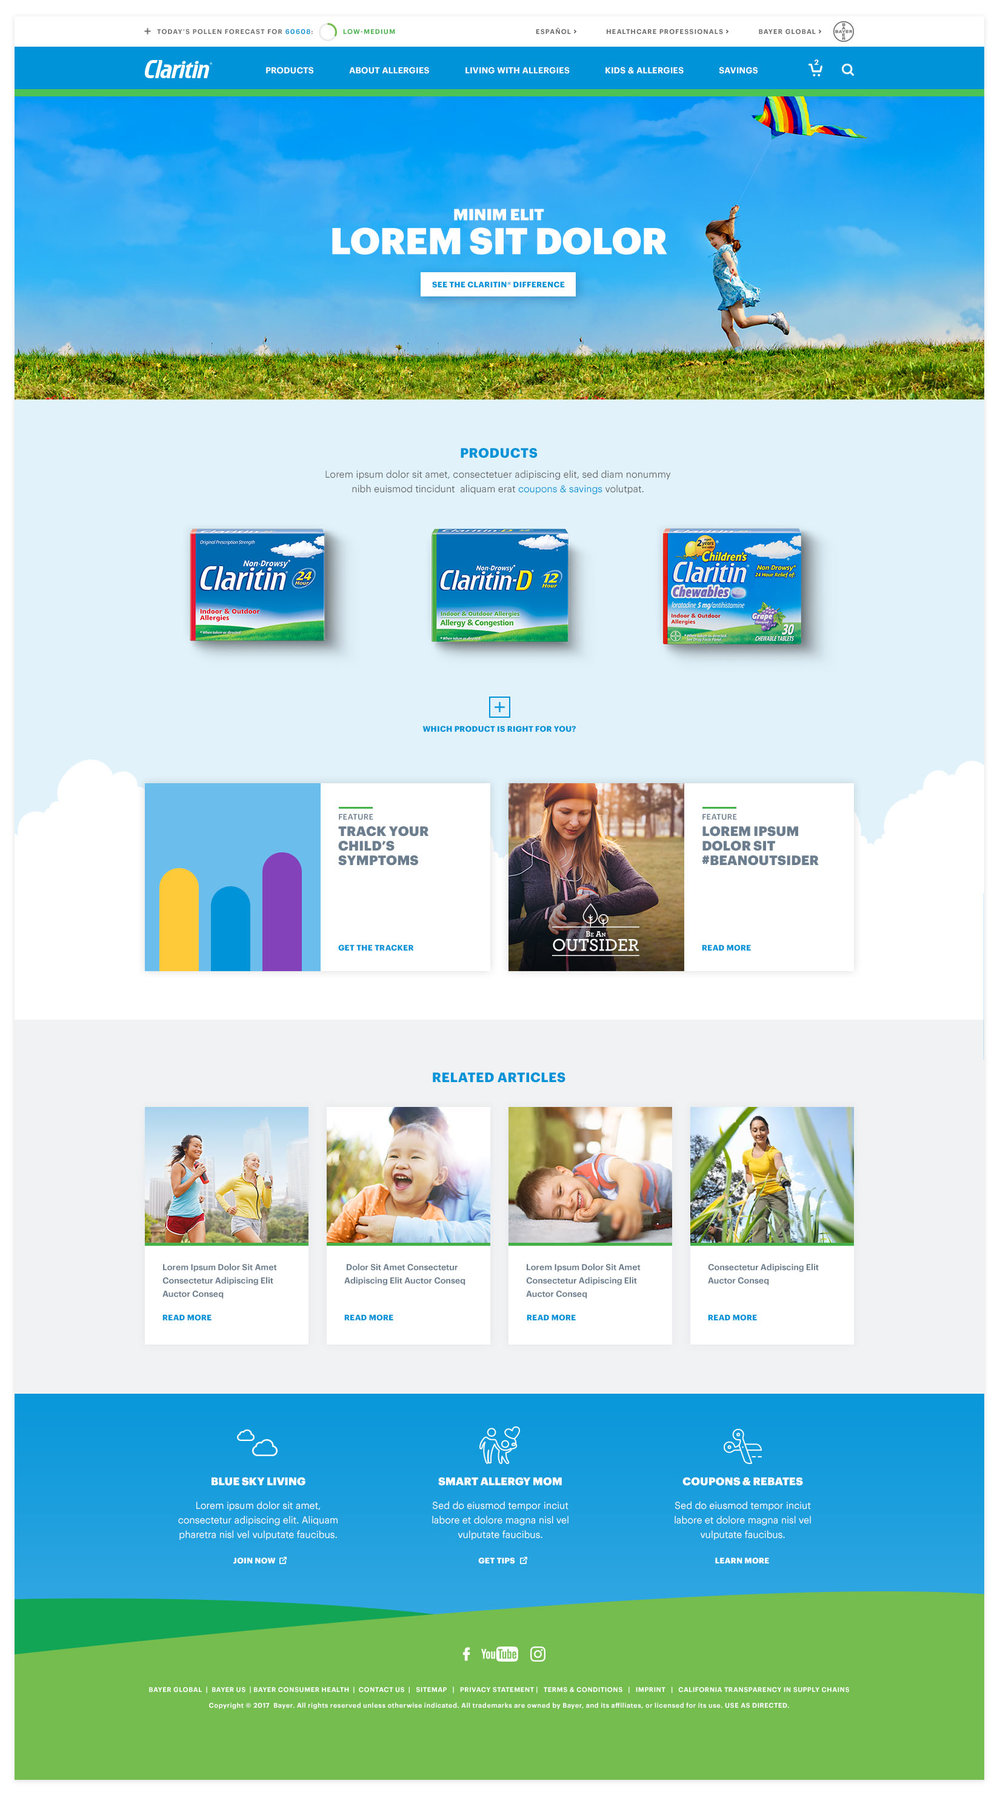 claritin_homepage_option2.jpg